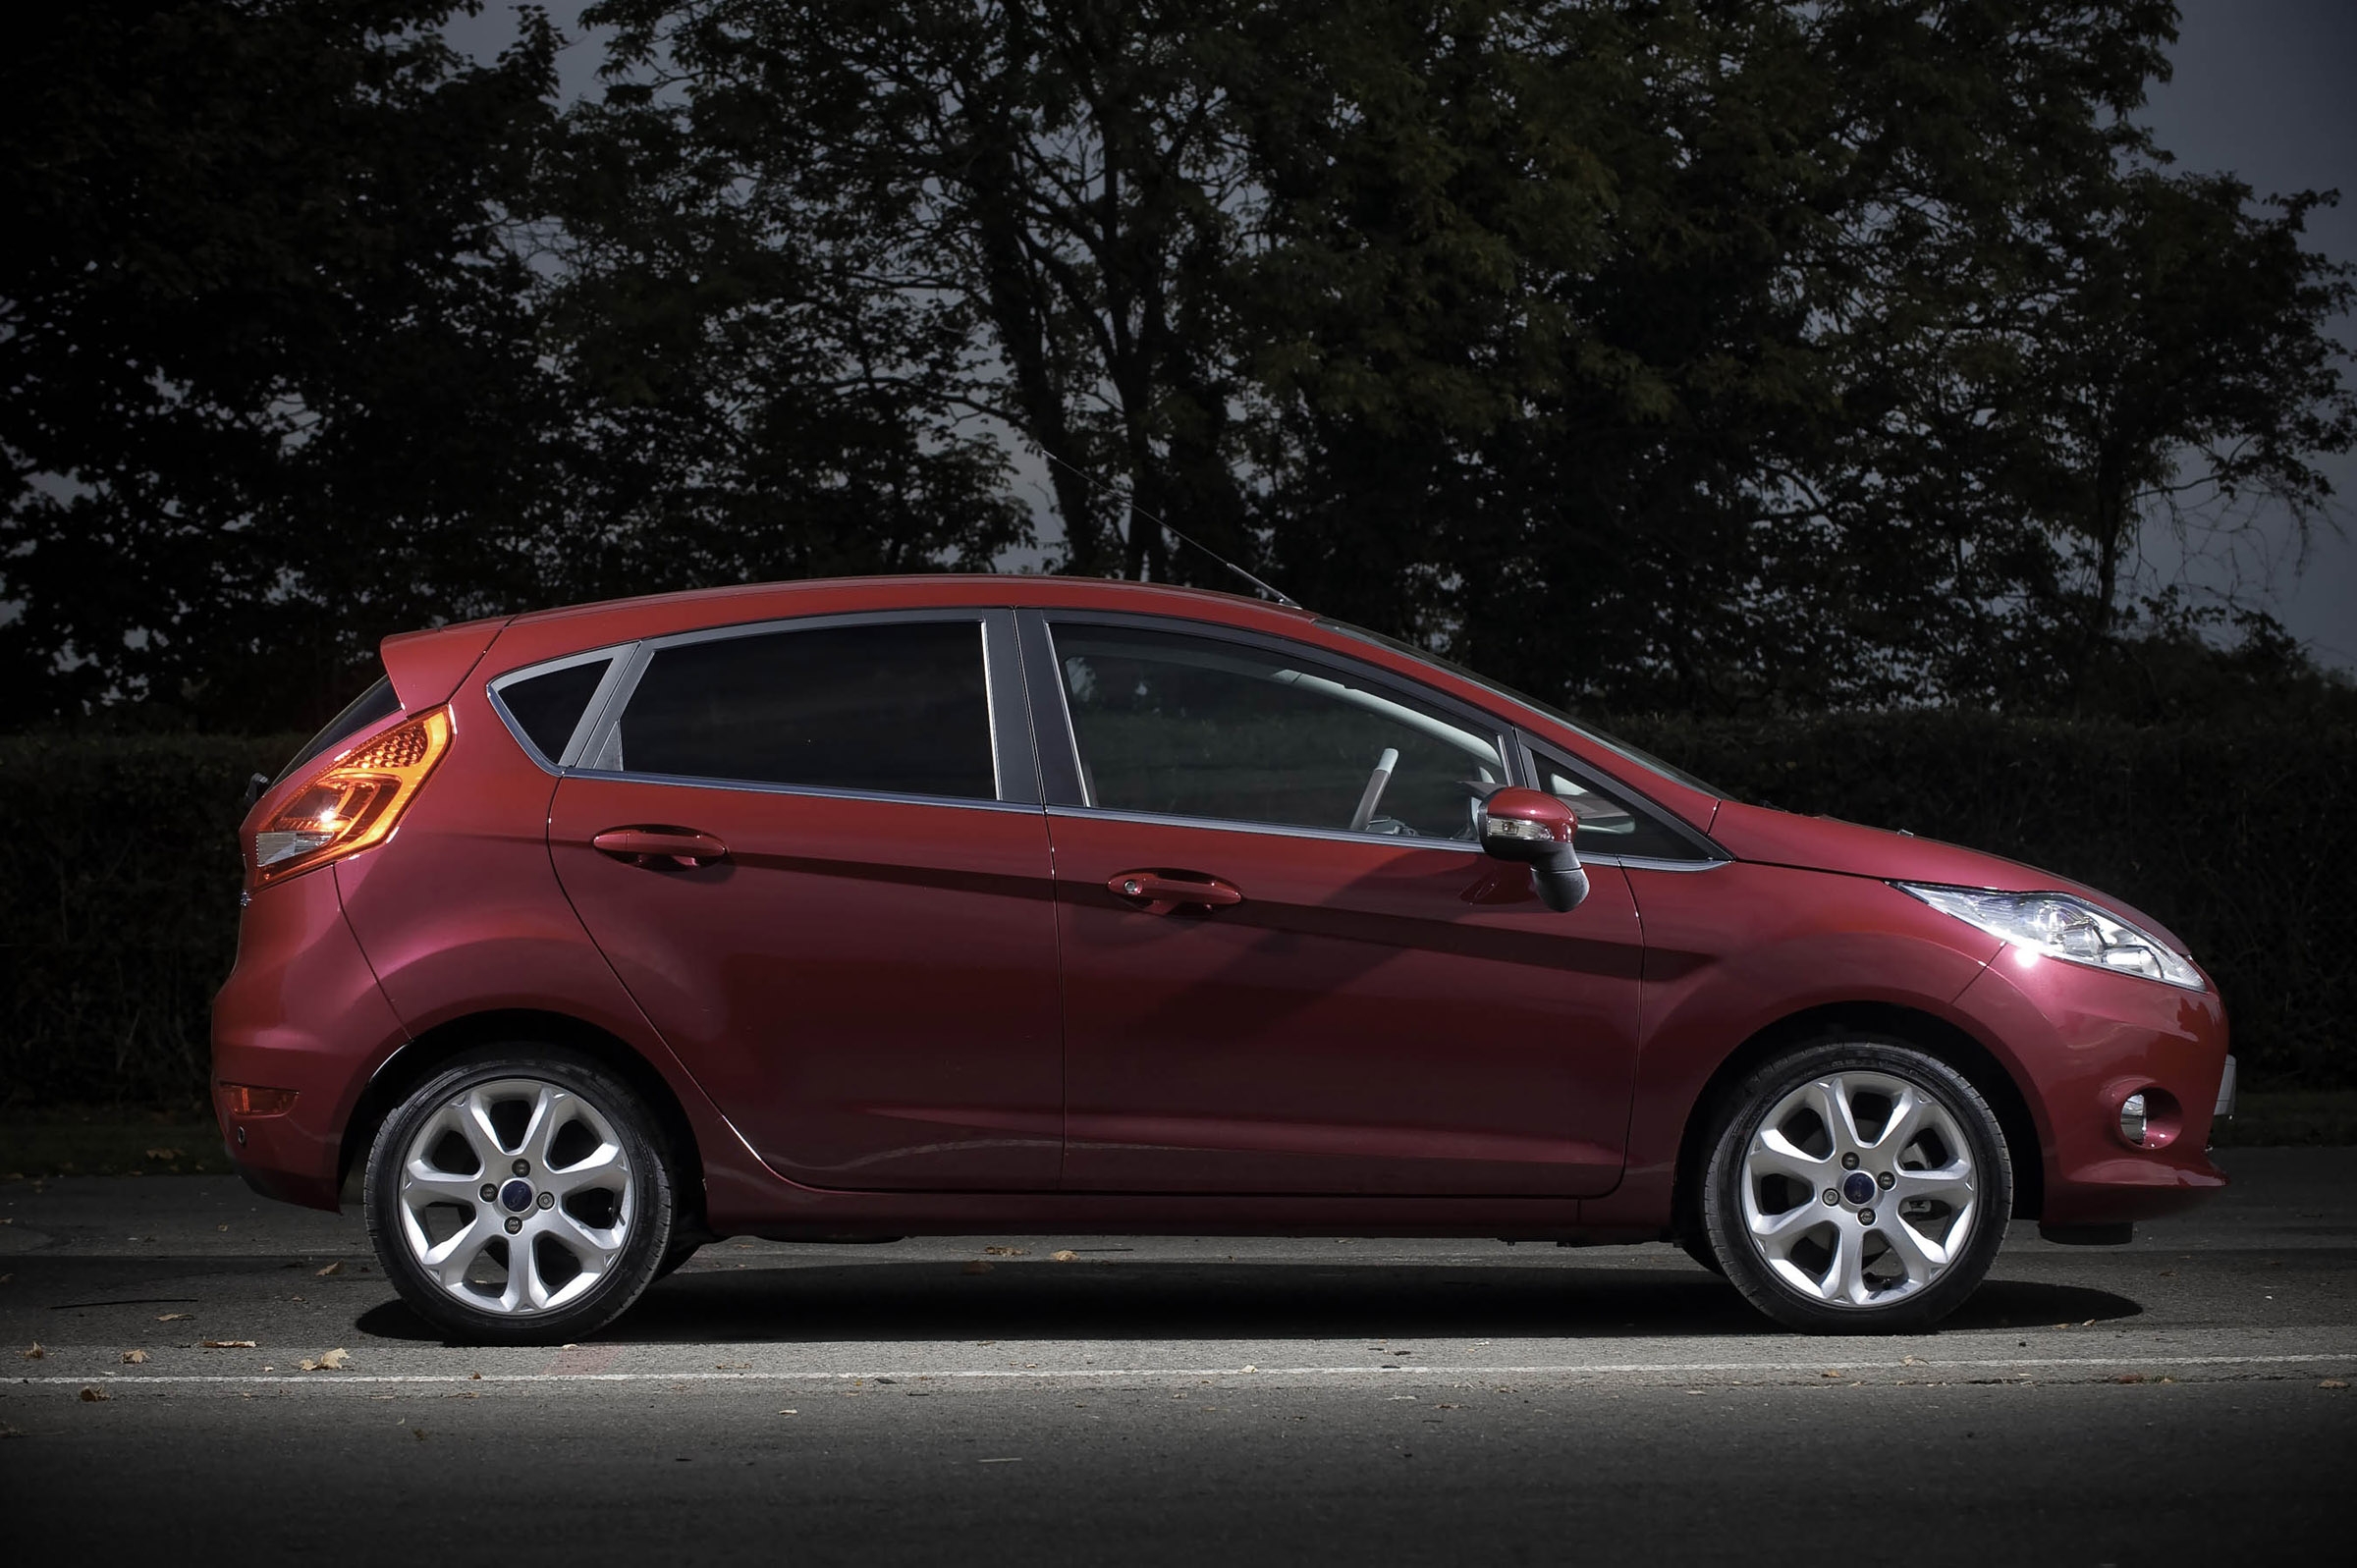 Ford Fiesta Titanium Individual - the first new Fista special edition